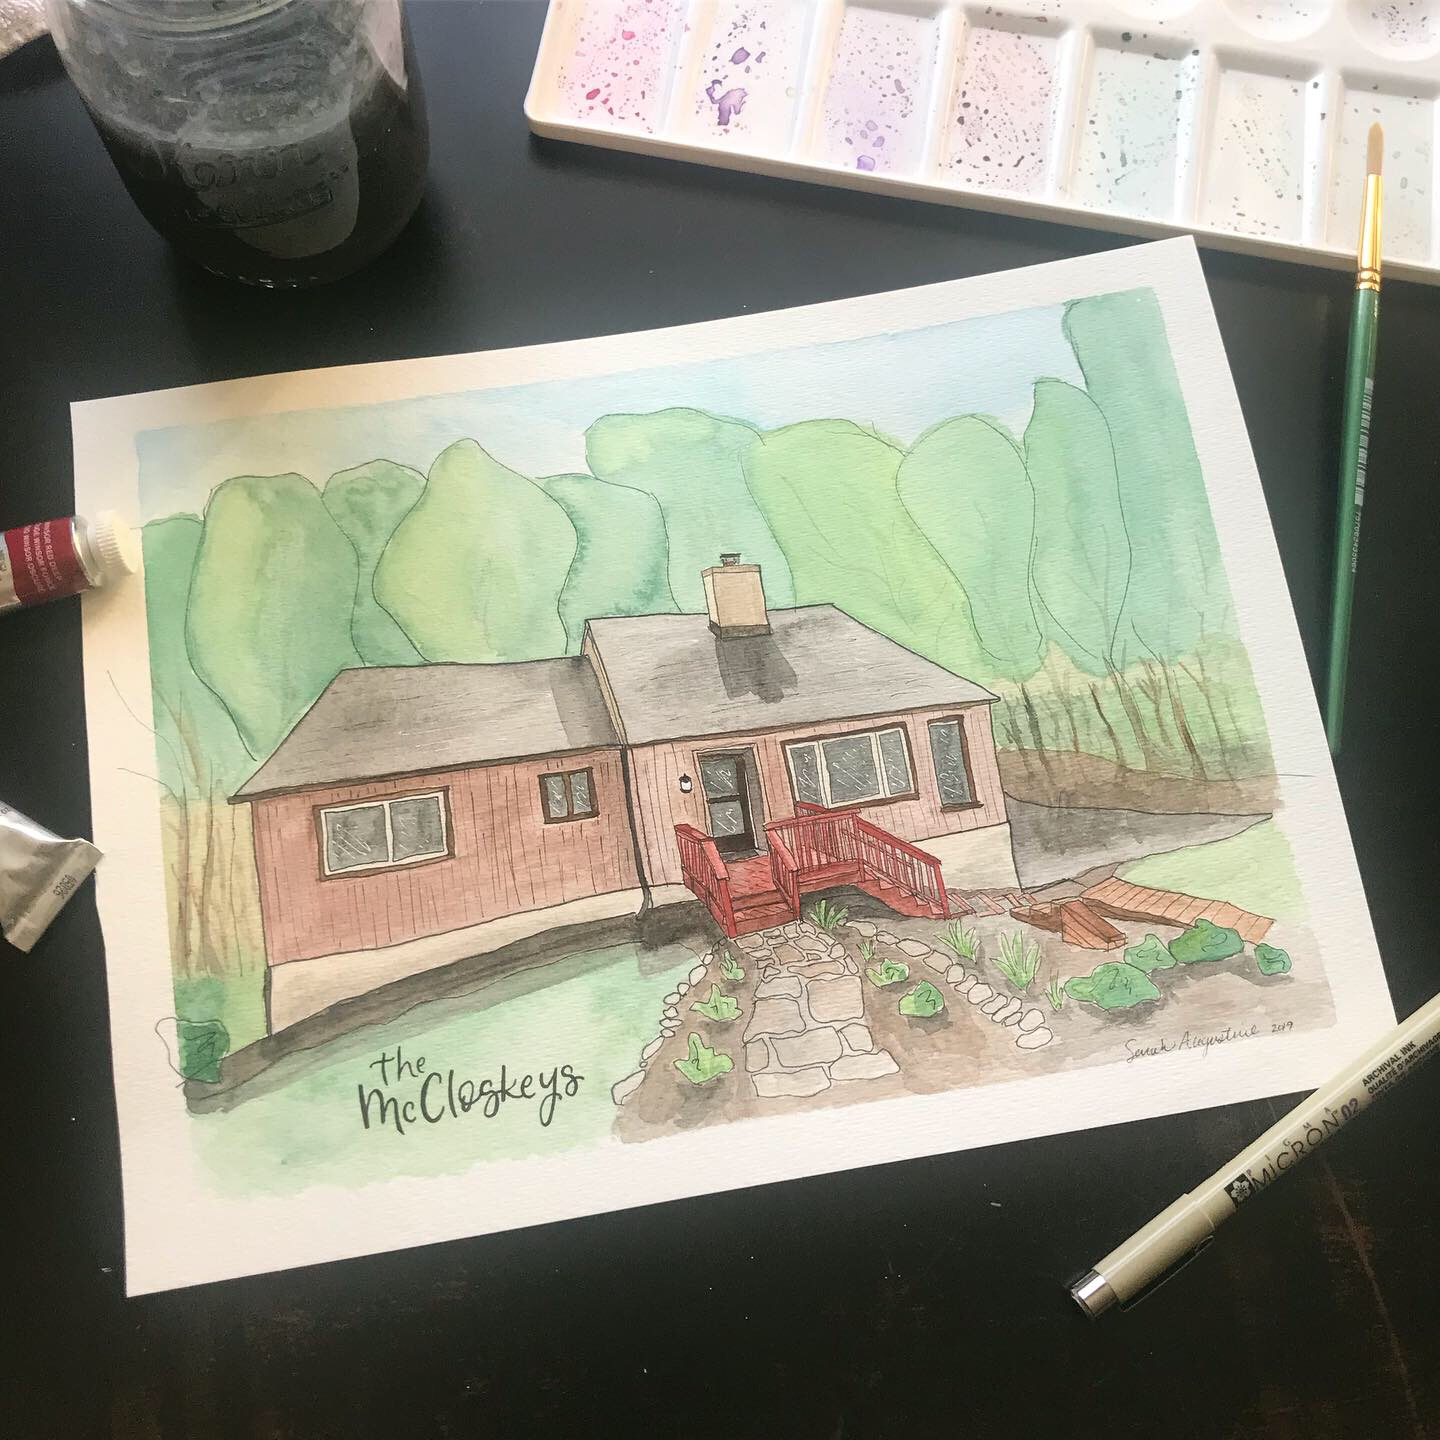 mccloskey home illustration.JPG